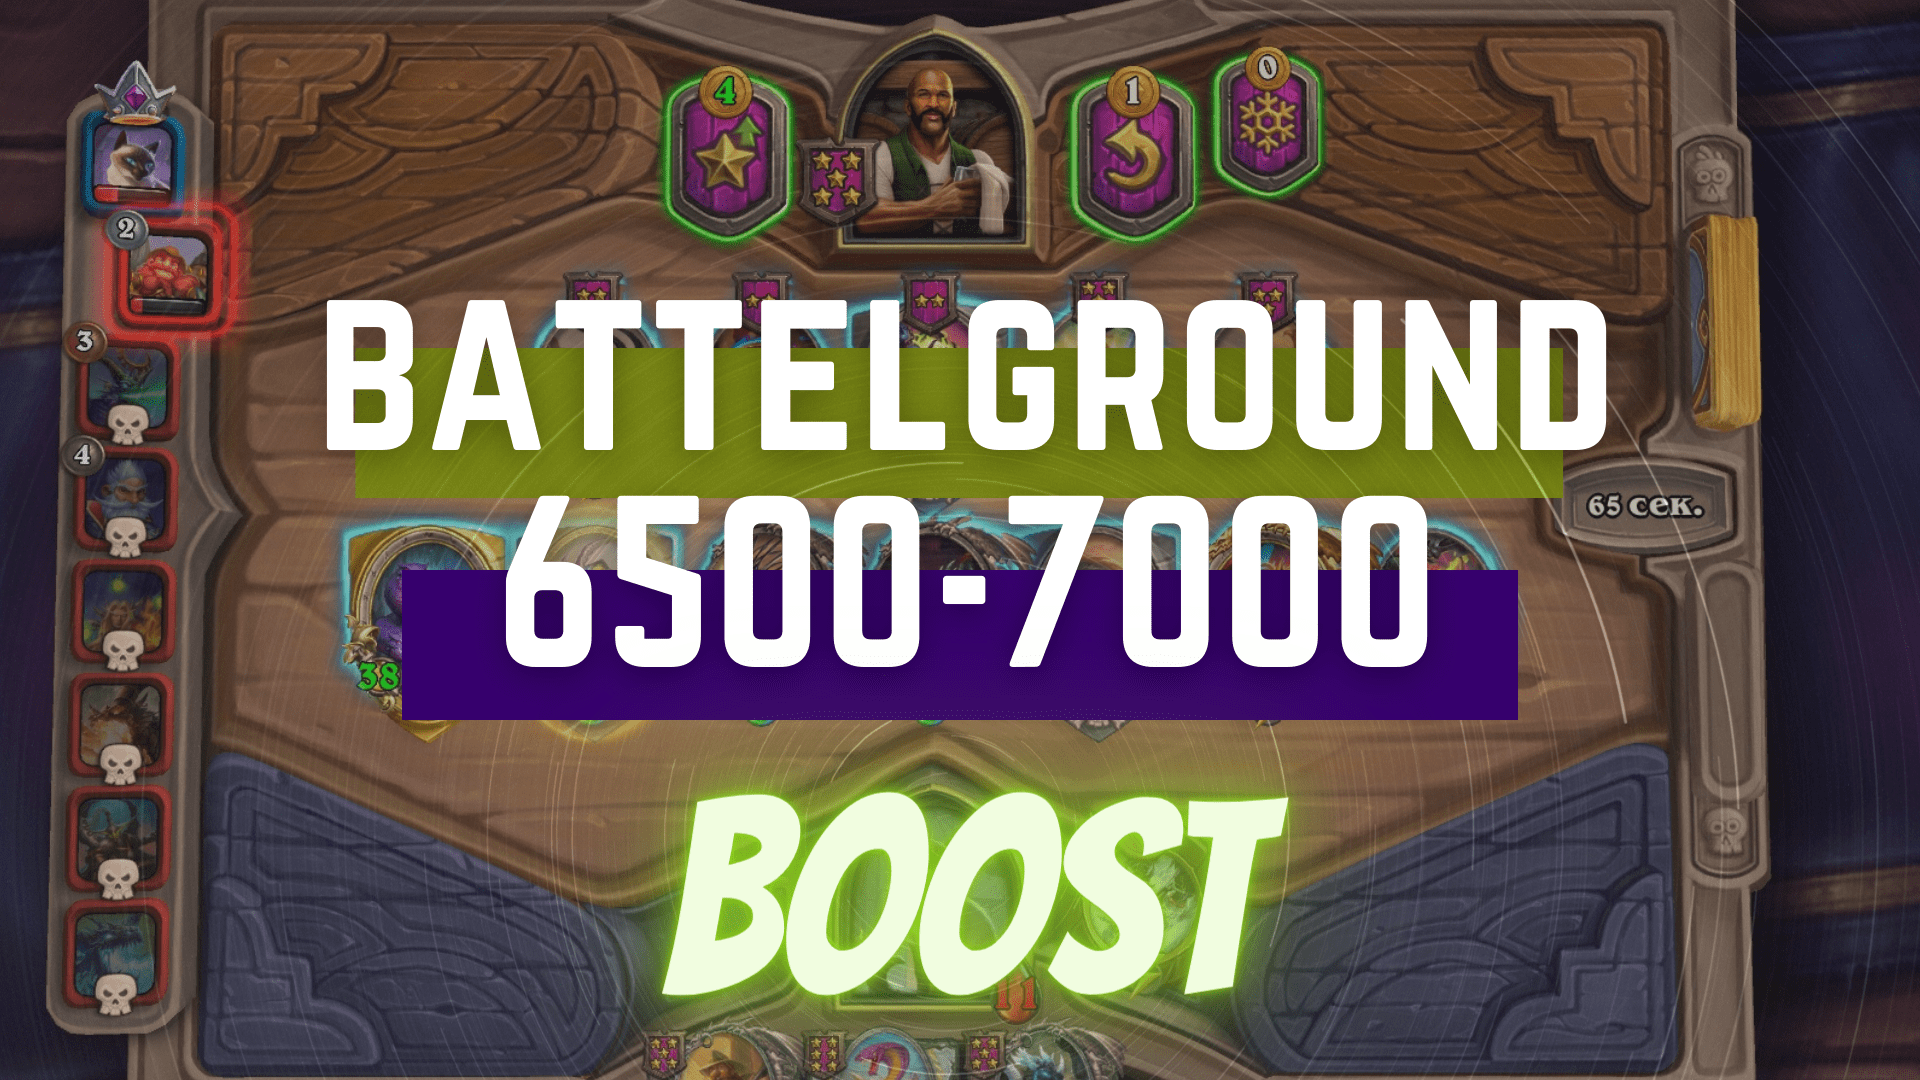 [BATTLEGROUNDS RATING] BOOST FROM 6500 TO 7000 Zafari - e2p.com